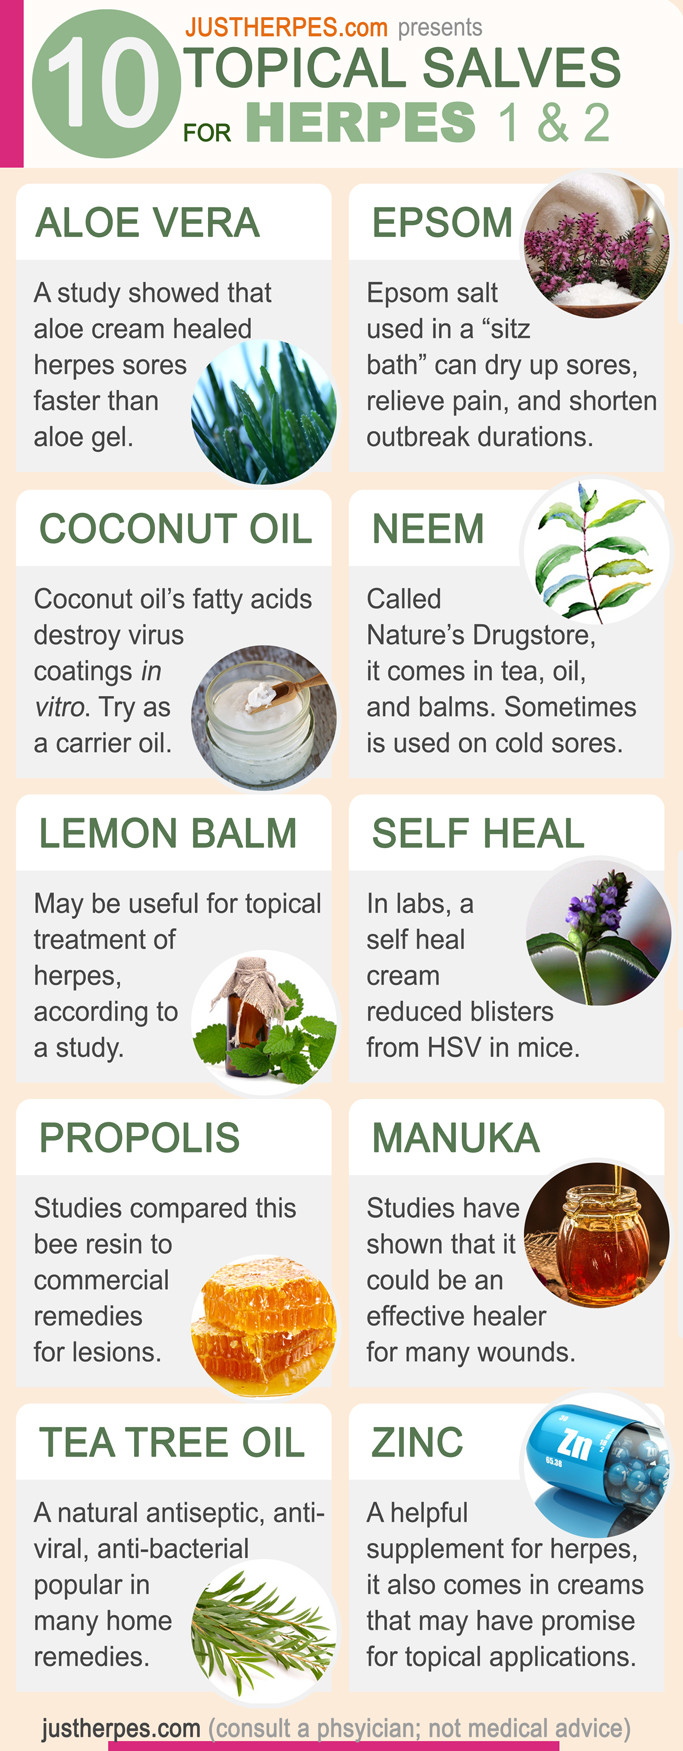 10 Herpes Topical Treatments and Salves Infographic